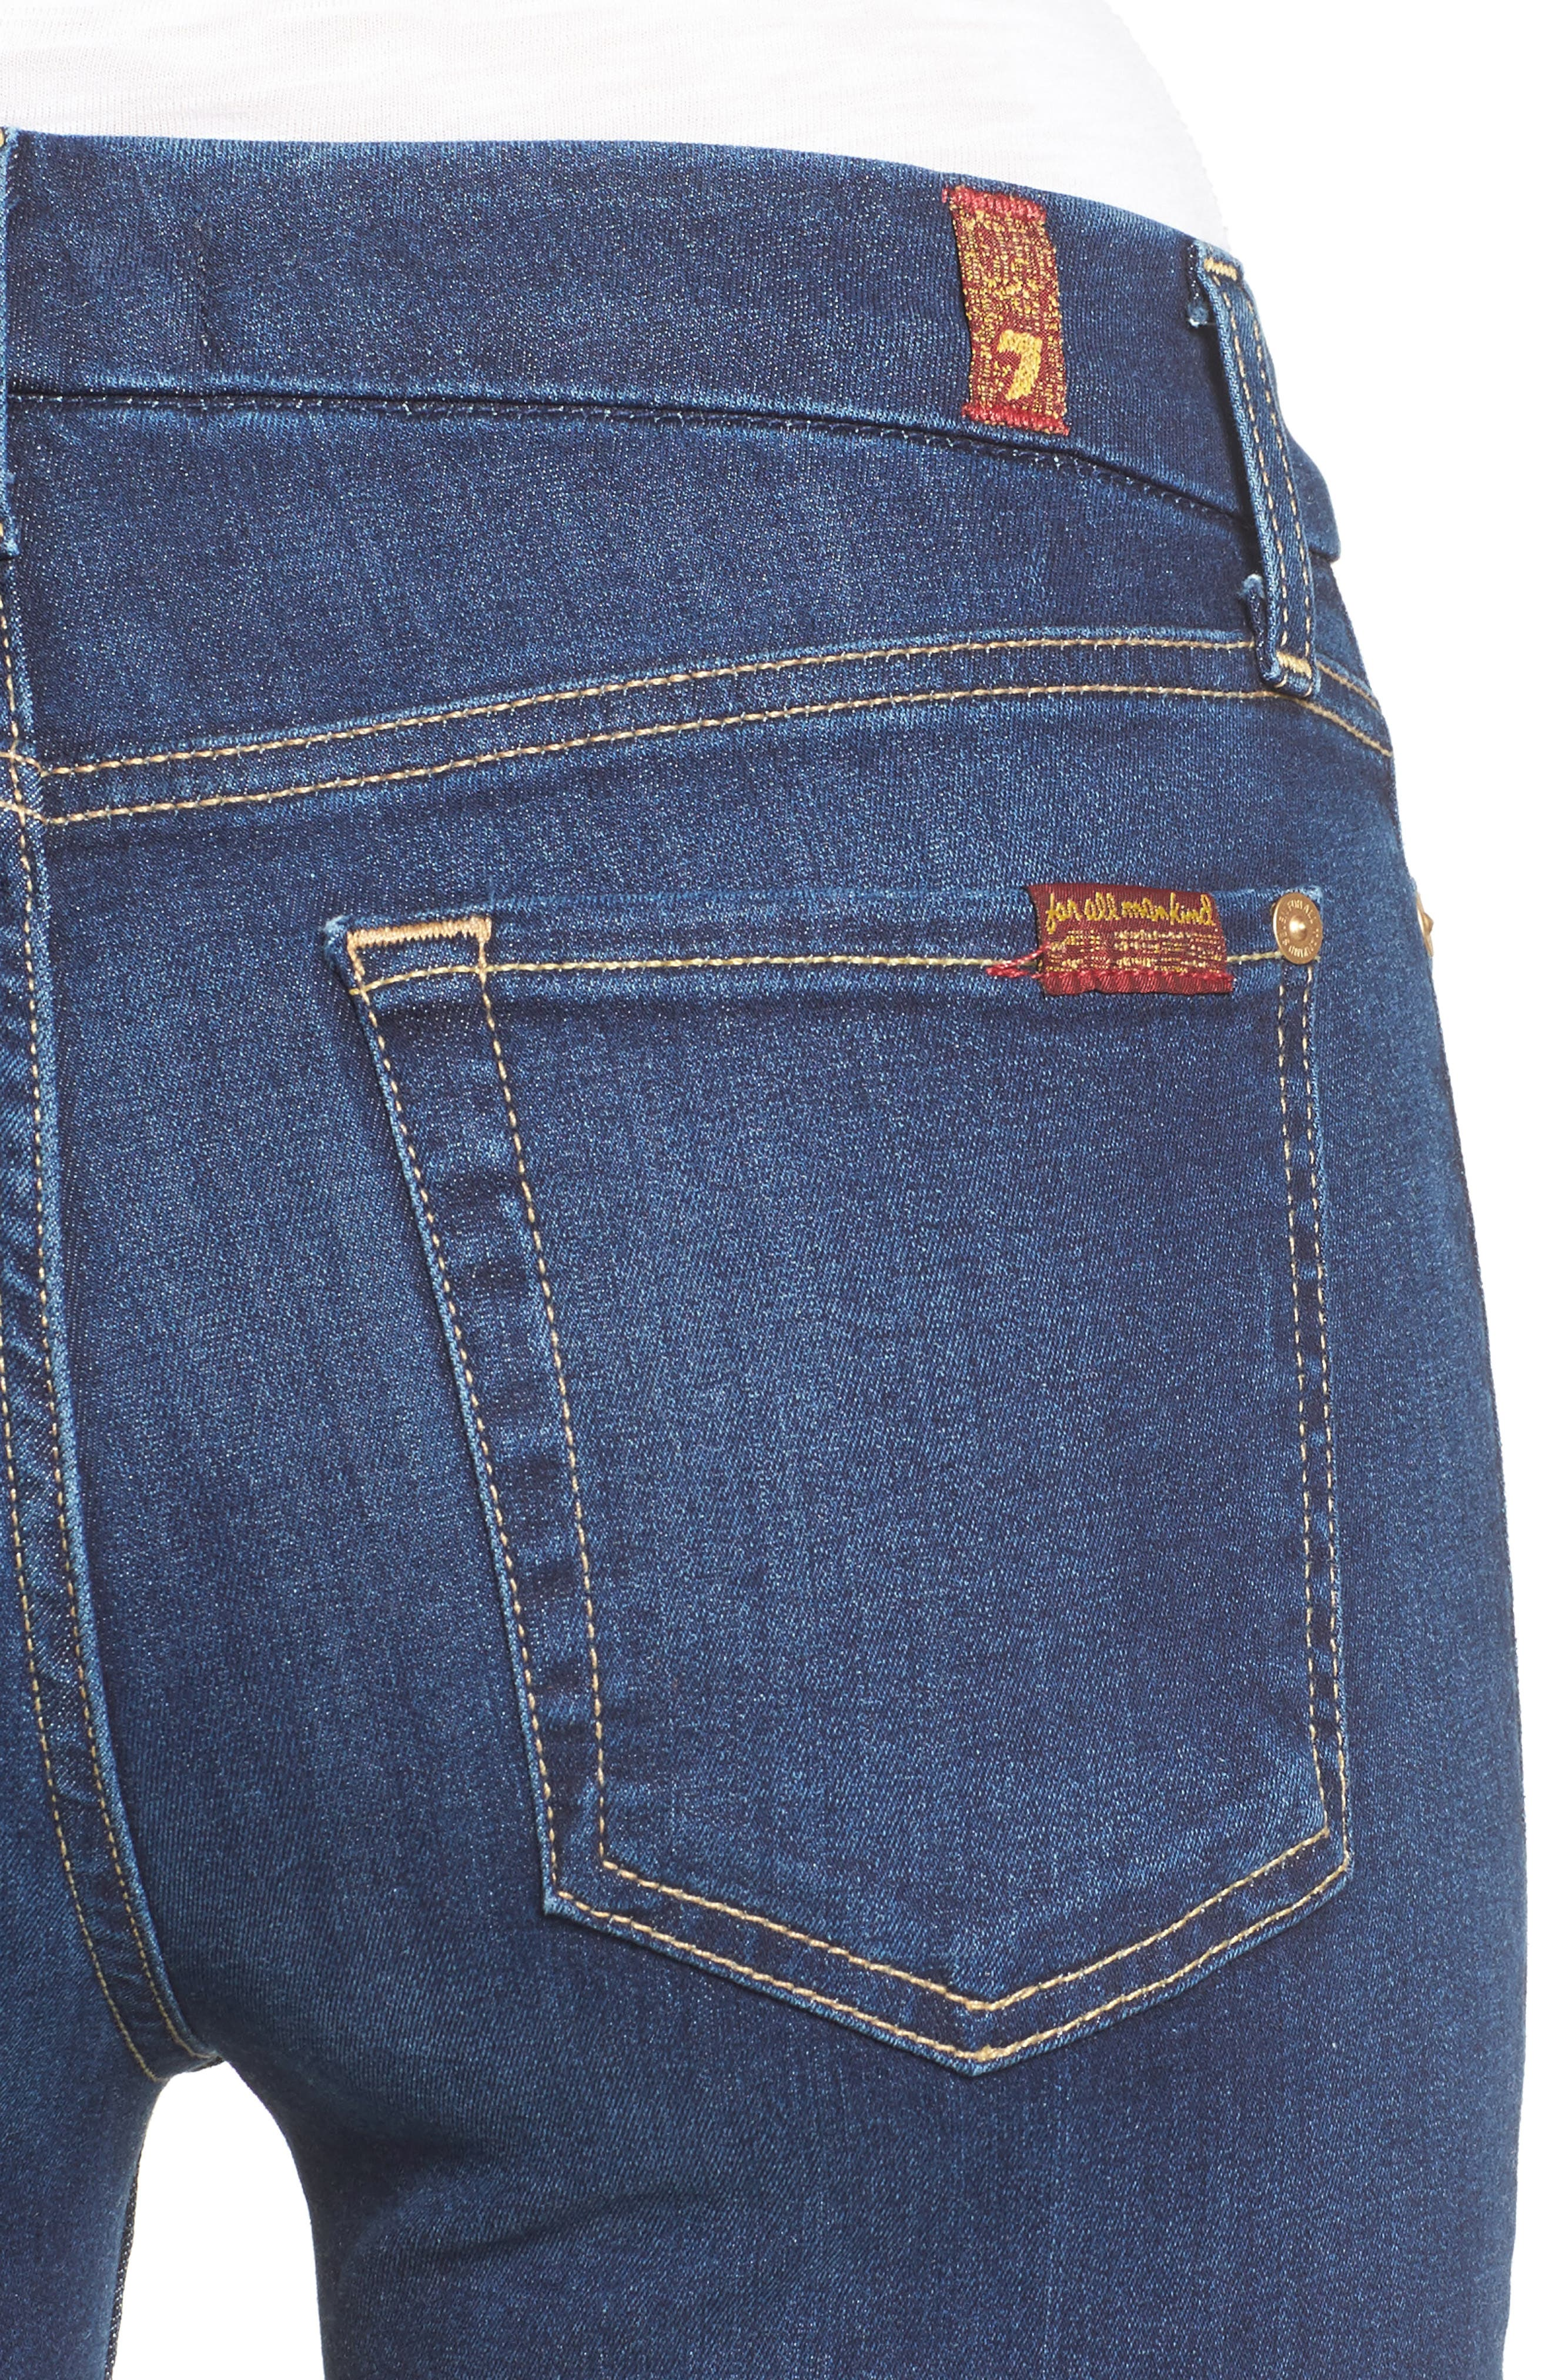 'b(air) - The Ankle' Skinny Jeans,                             Alternate thumbnail 17, color,